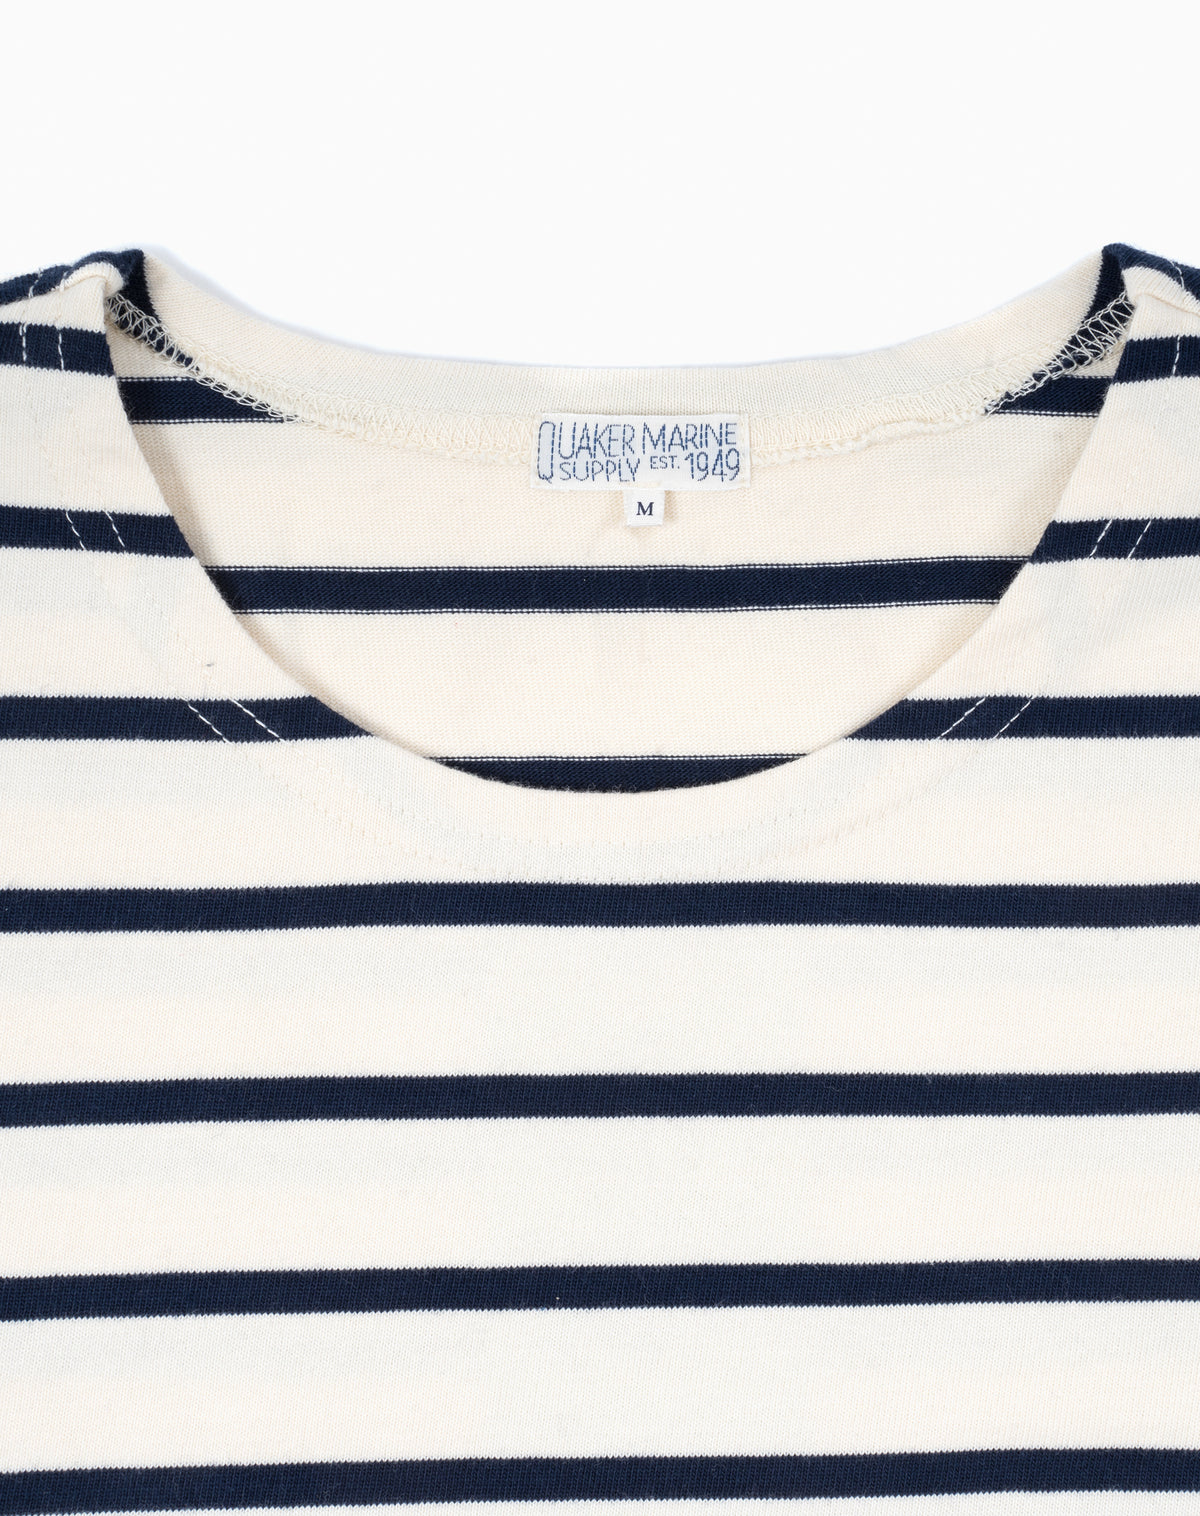 French Sailor in Cream/Navy